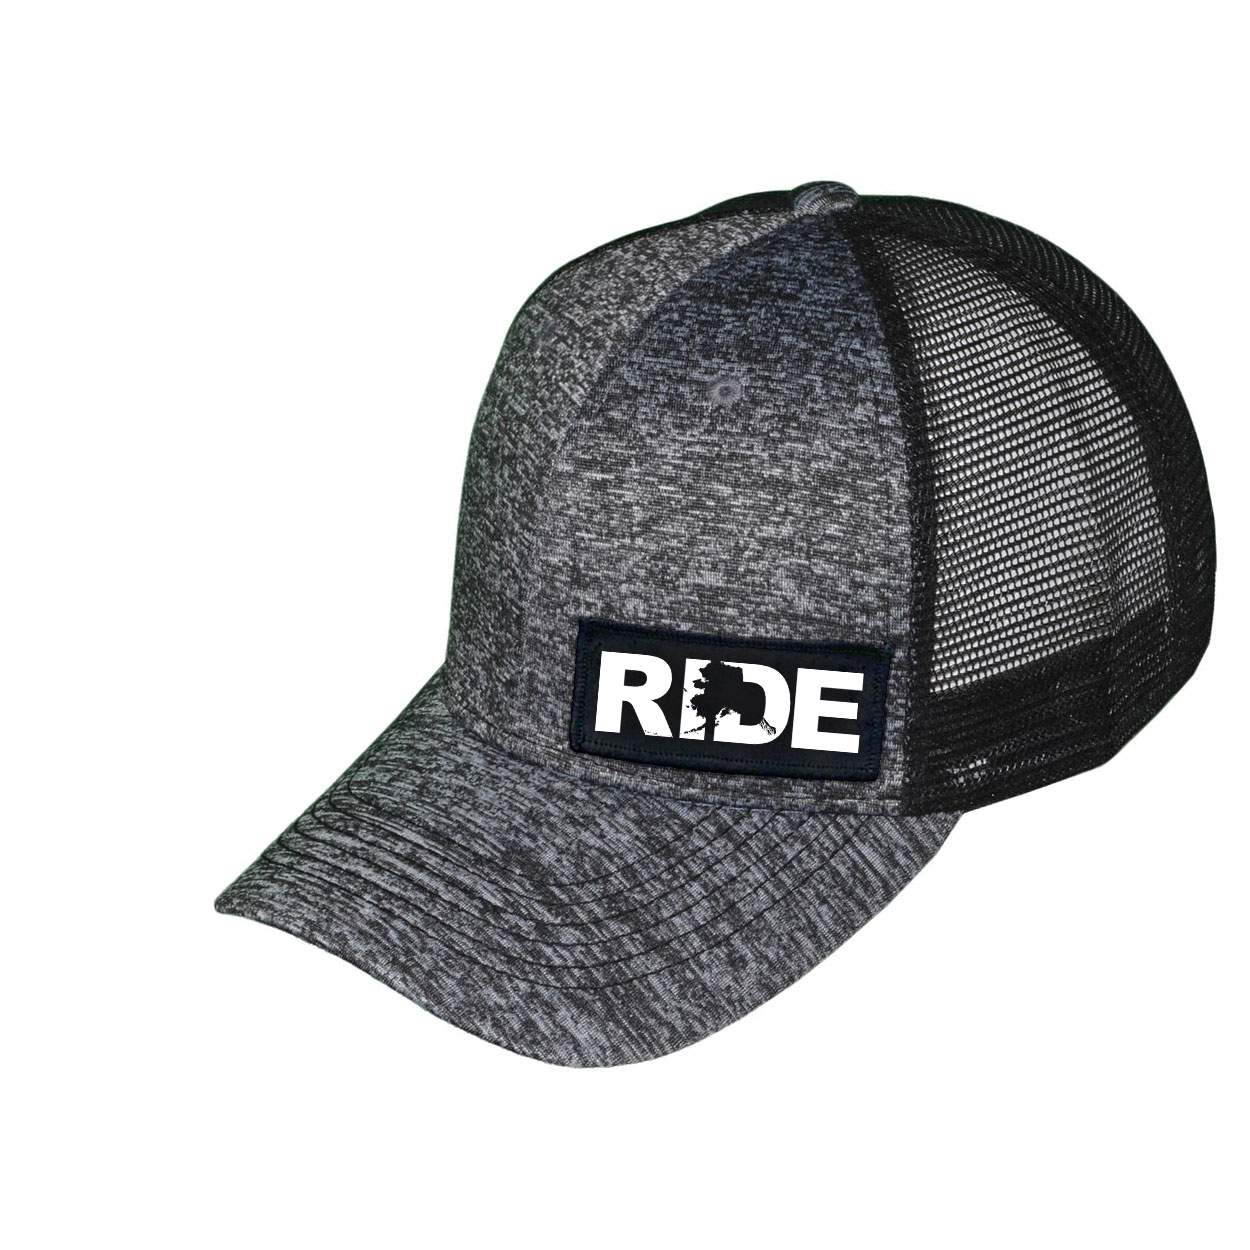 Ride Alaska Night Out Woven Patch Melange Snapback Trucker Hat Gray/Black (White Logo)